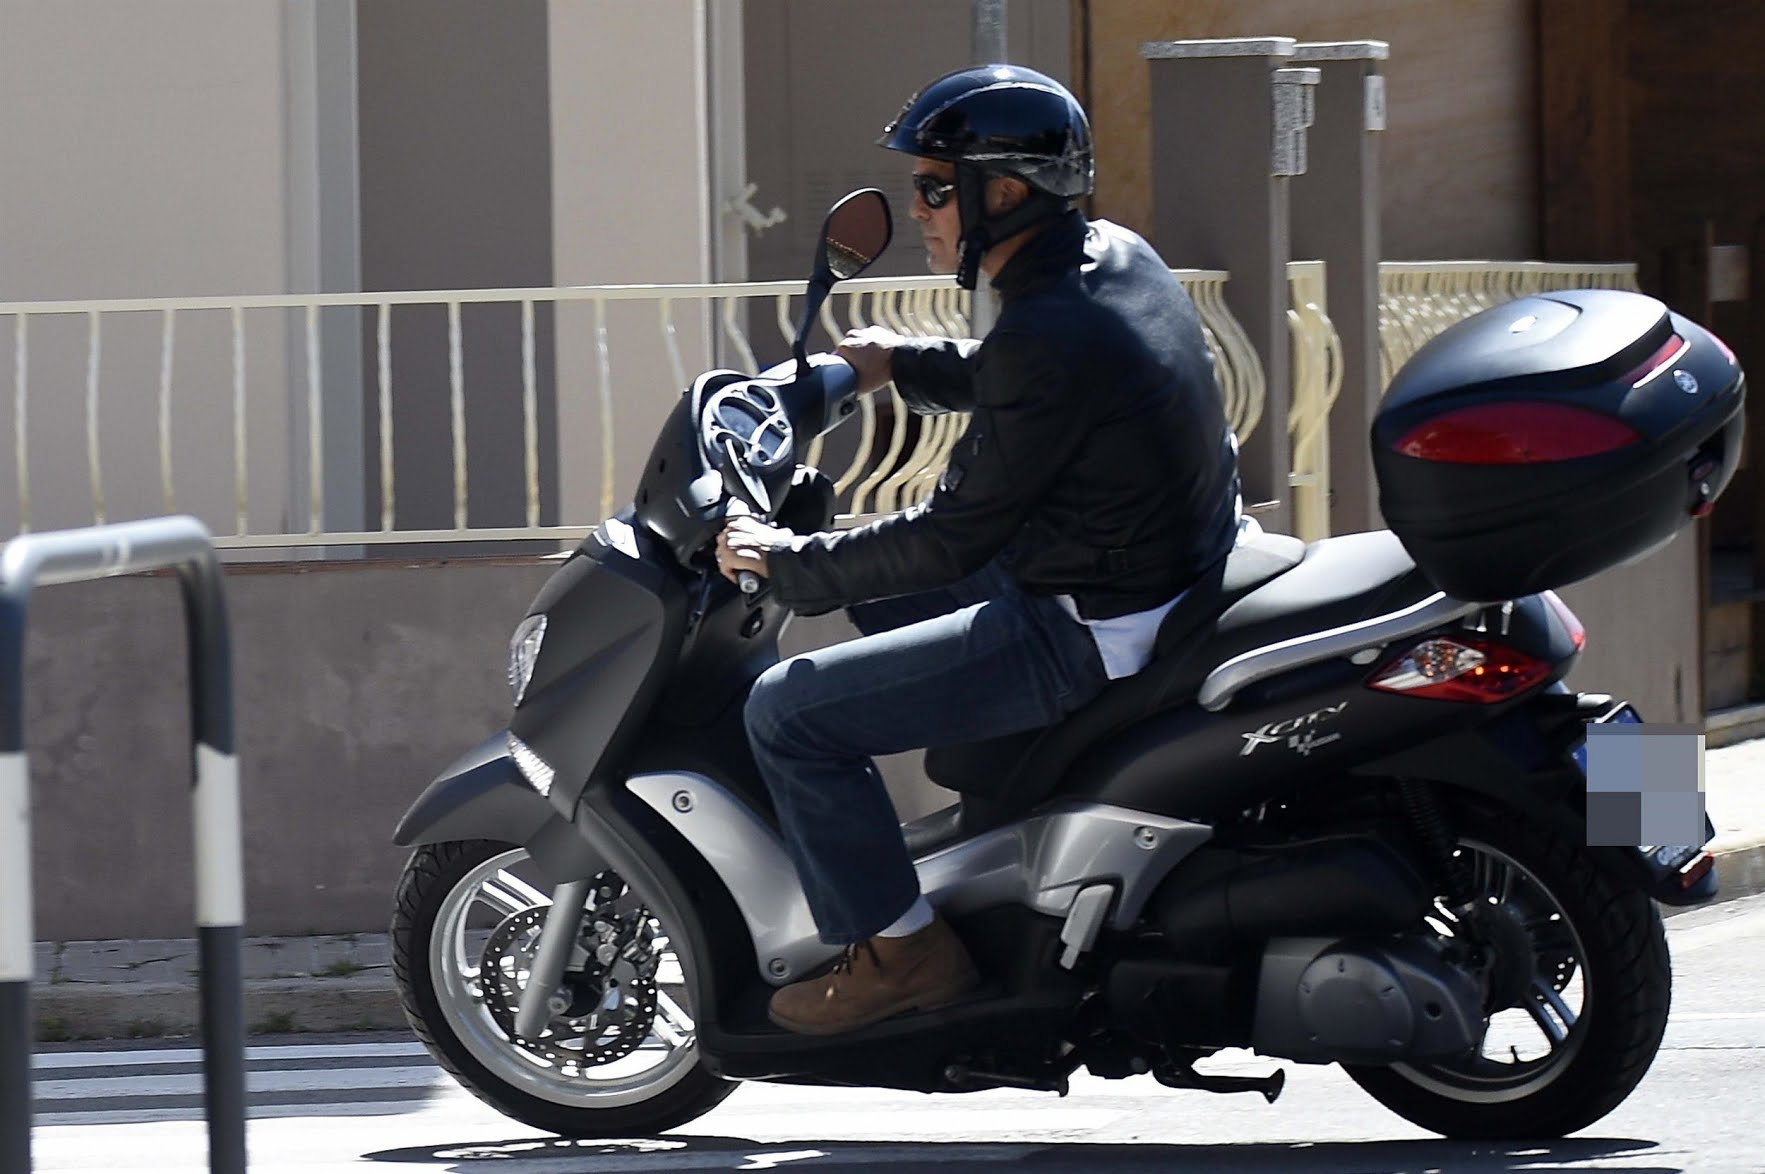 Photos George Clooney hospitalised after motorcycle accident 1765x1174